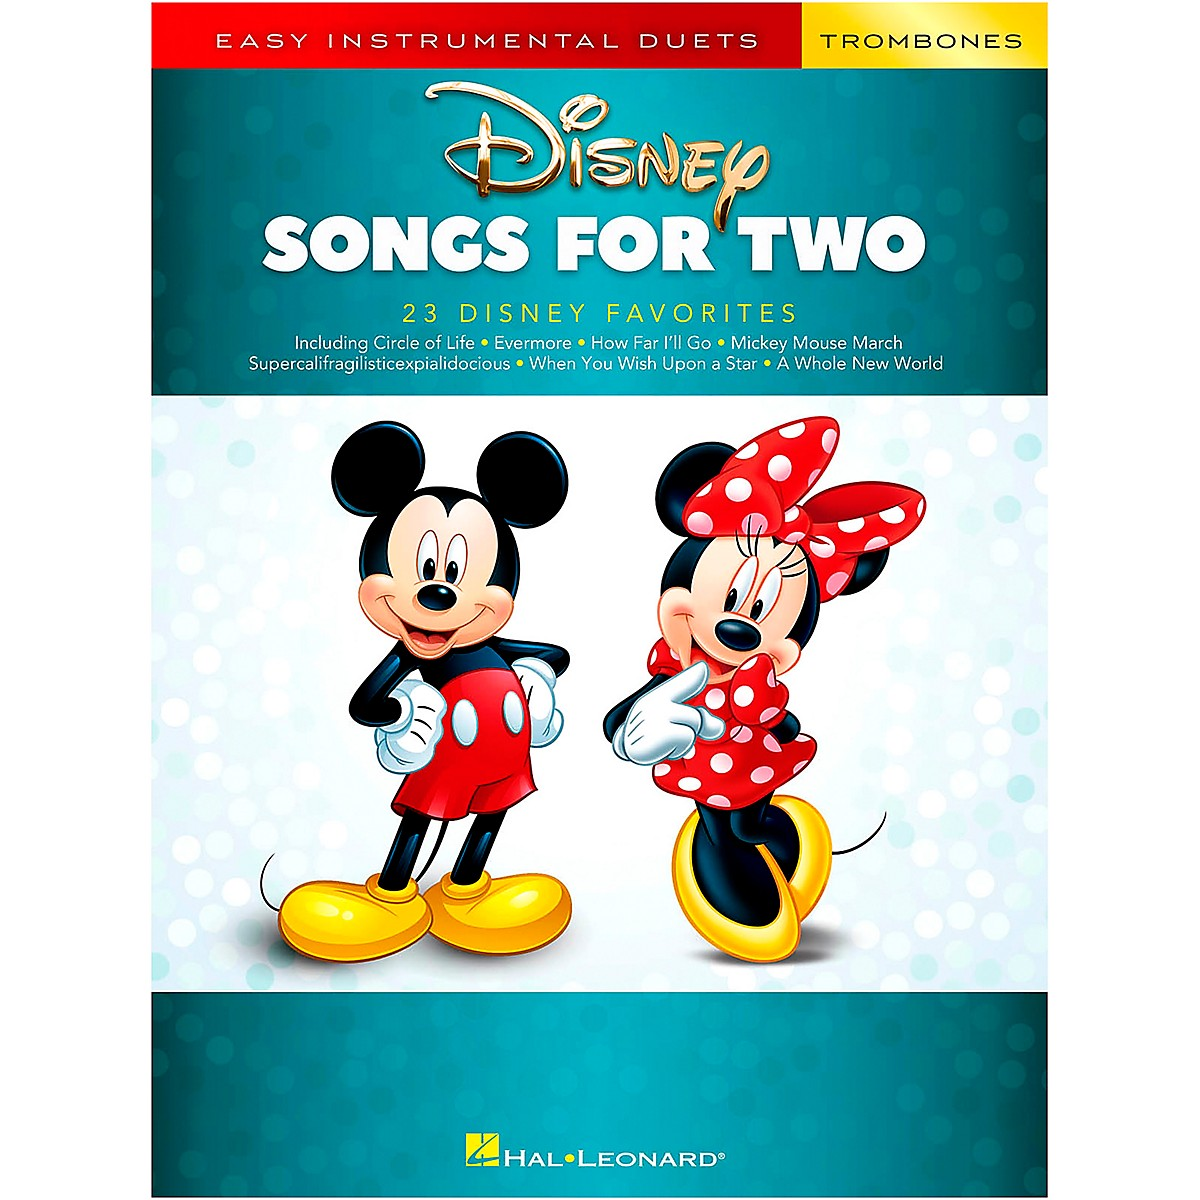 Hal Leonard Disney Songs for Two Trombones - Easy Instrumental Duets Series Songbook